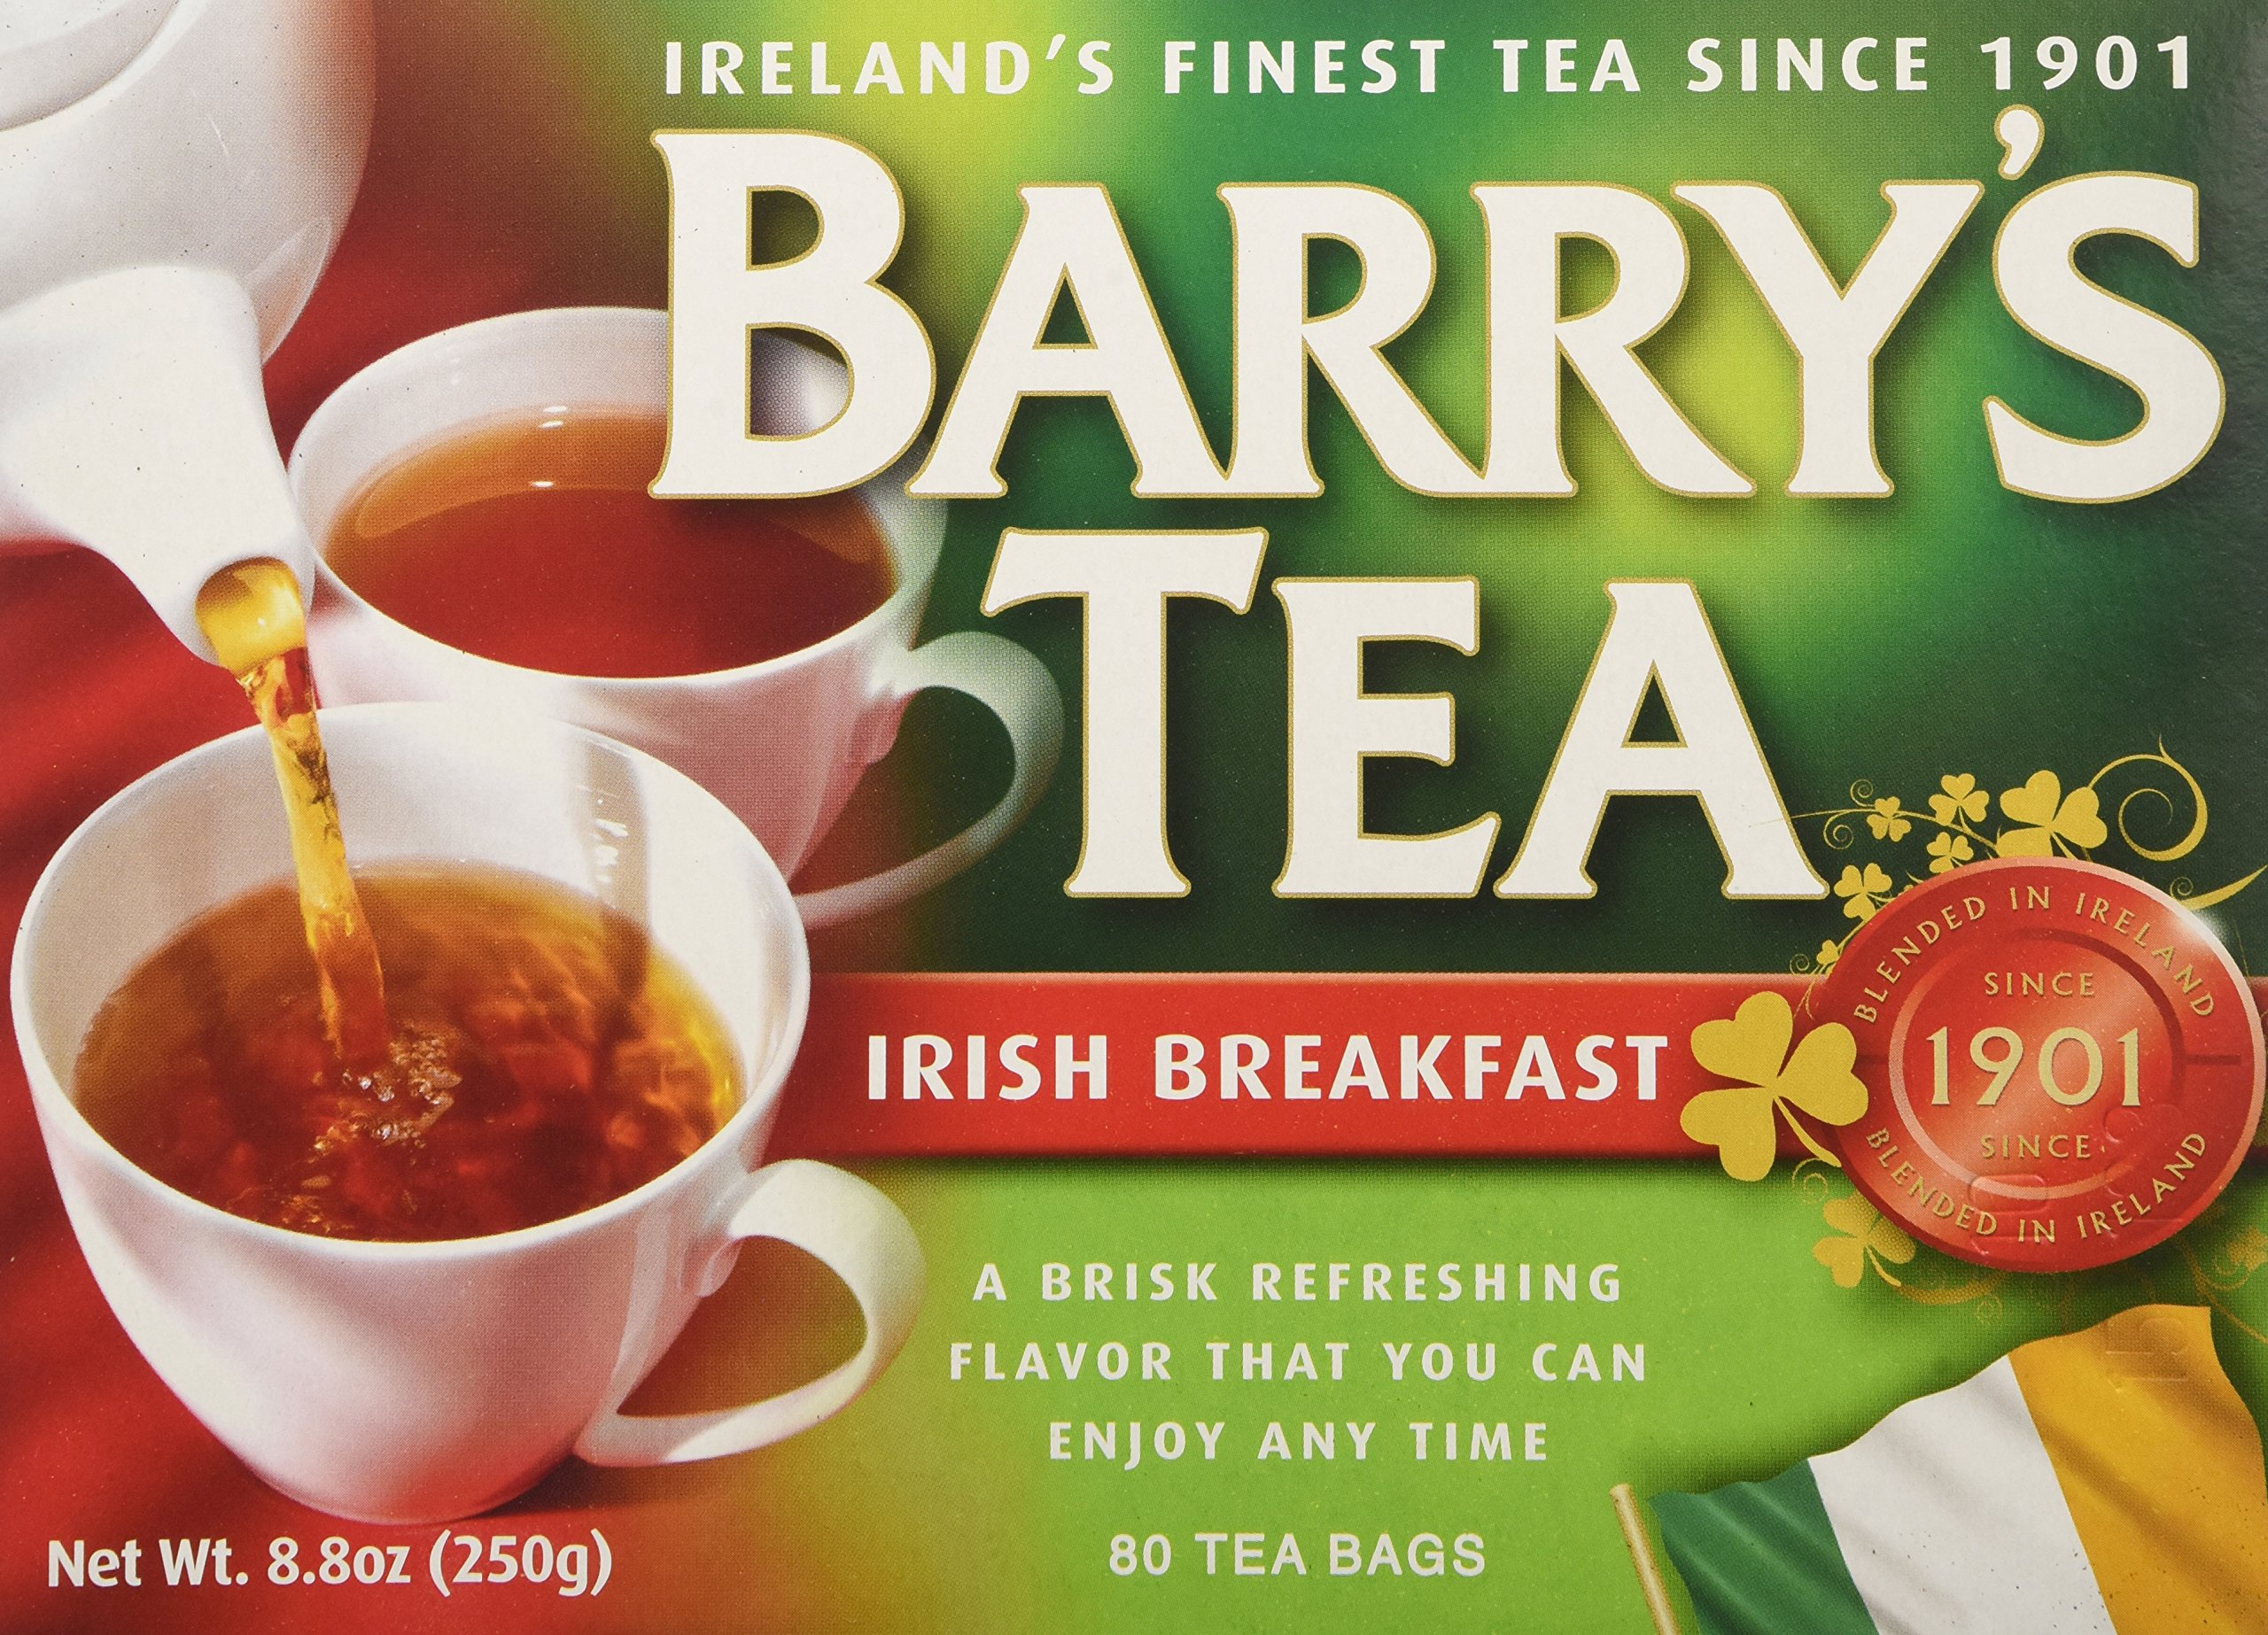 Barry's Tea Irish Breakfast Teabags (80) - Pack of 2 by Barry's Tea (Image #1)